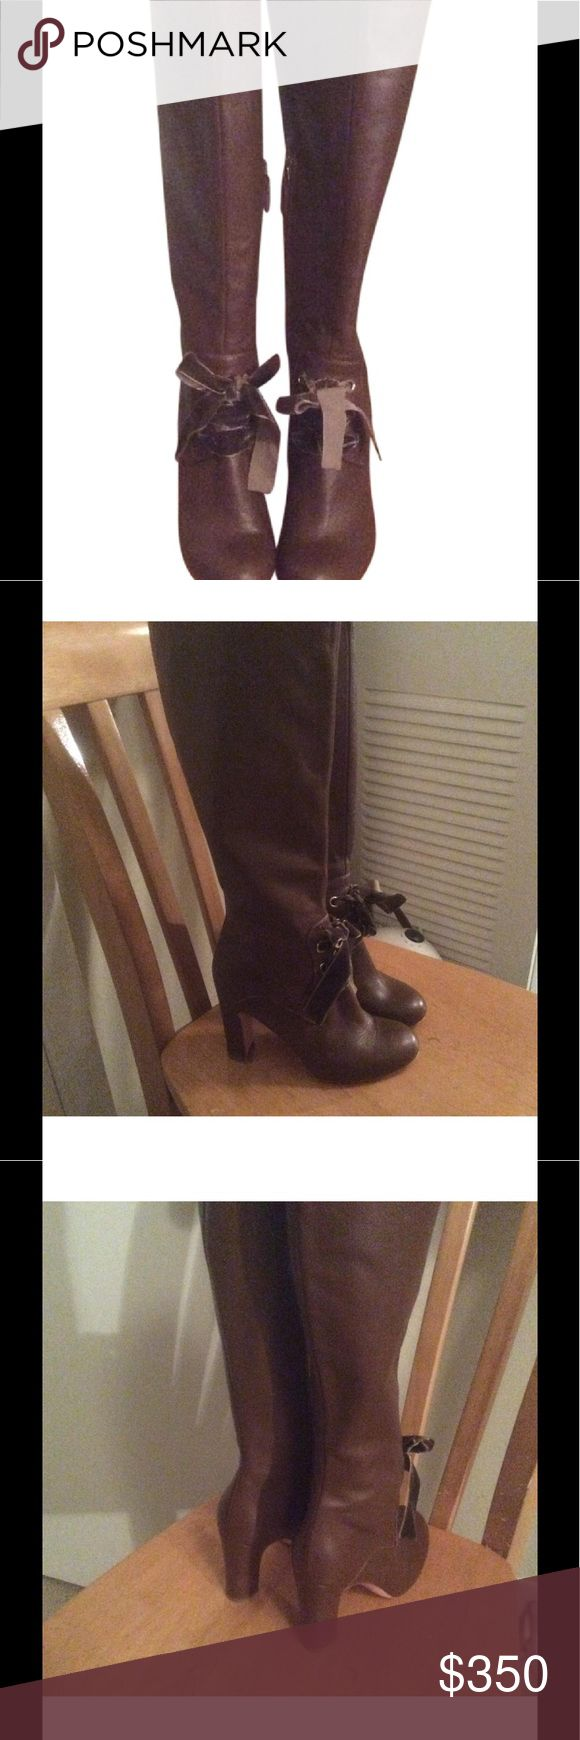 Valentino Red Brown Leather Boots 6 In great condition worn a couple of times, enjoy. No box dust bag, just the boots RED Valentino Shoes Winter & Rain Boots